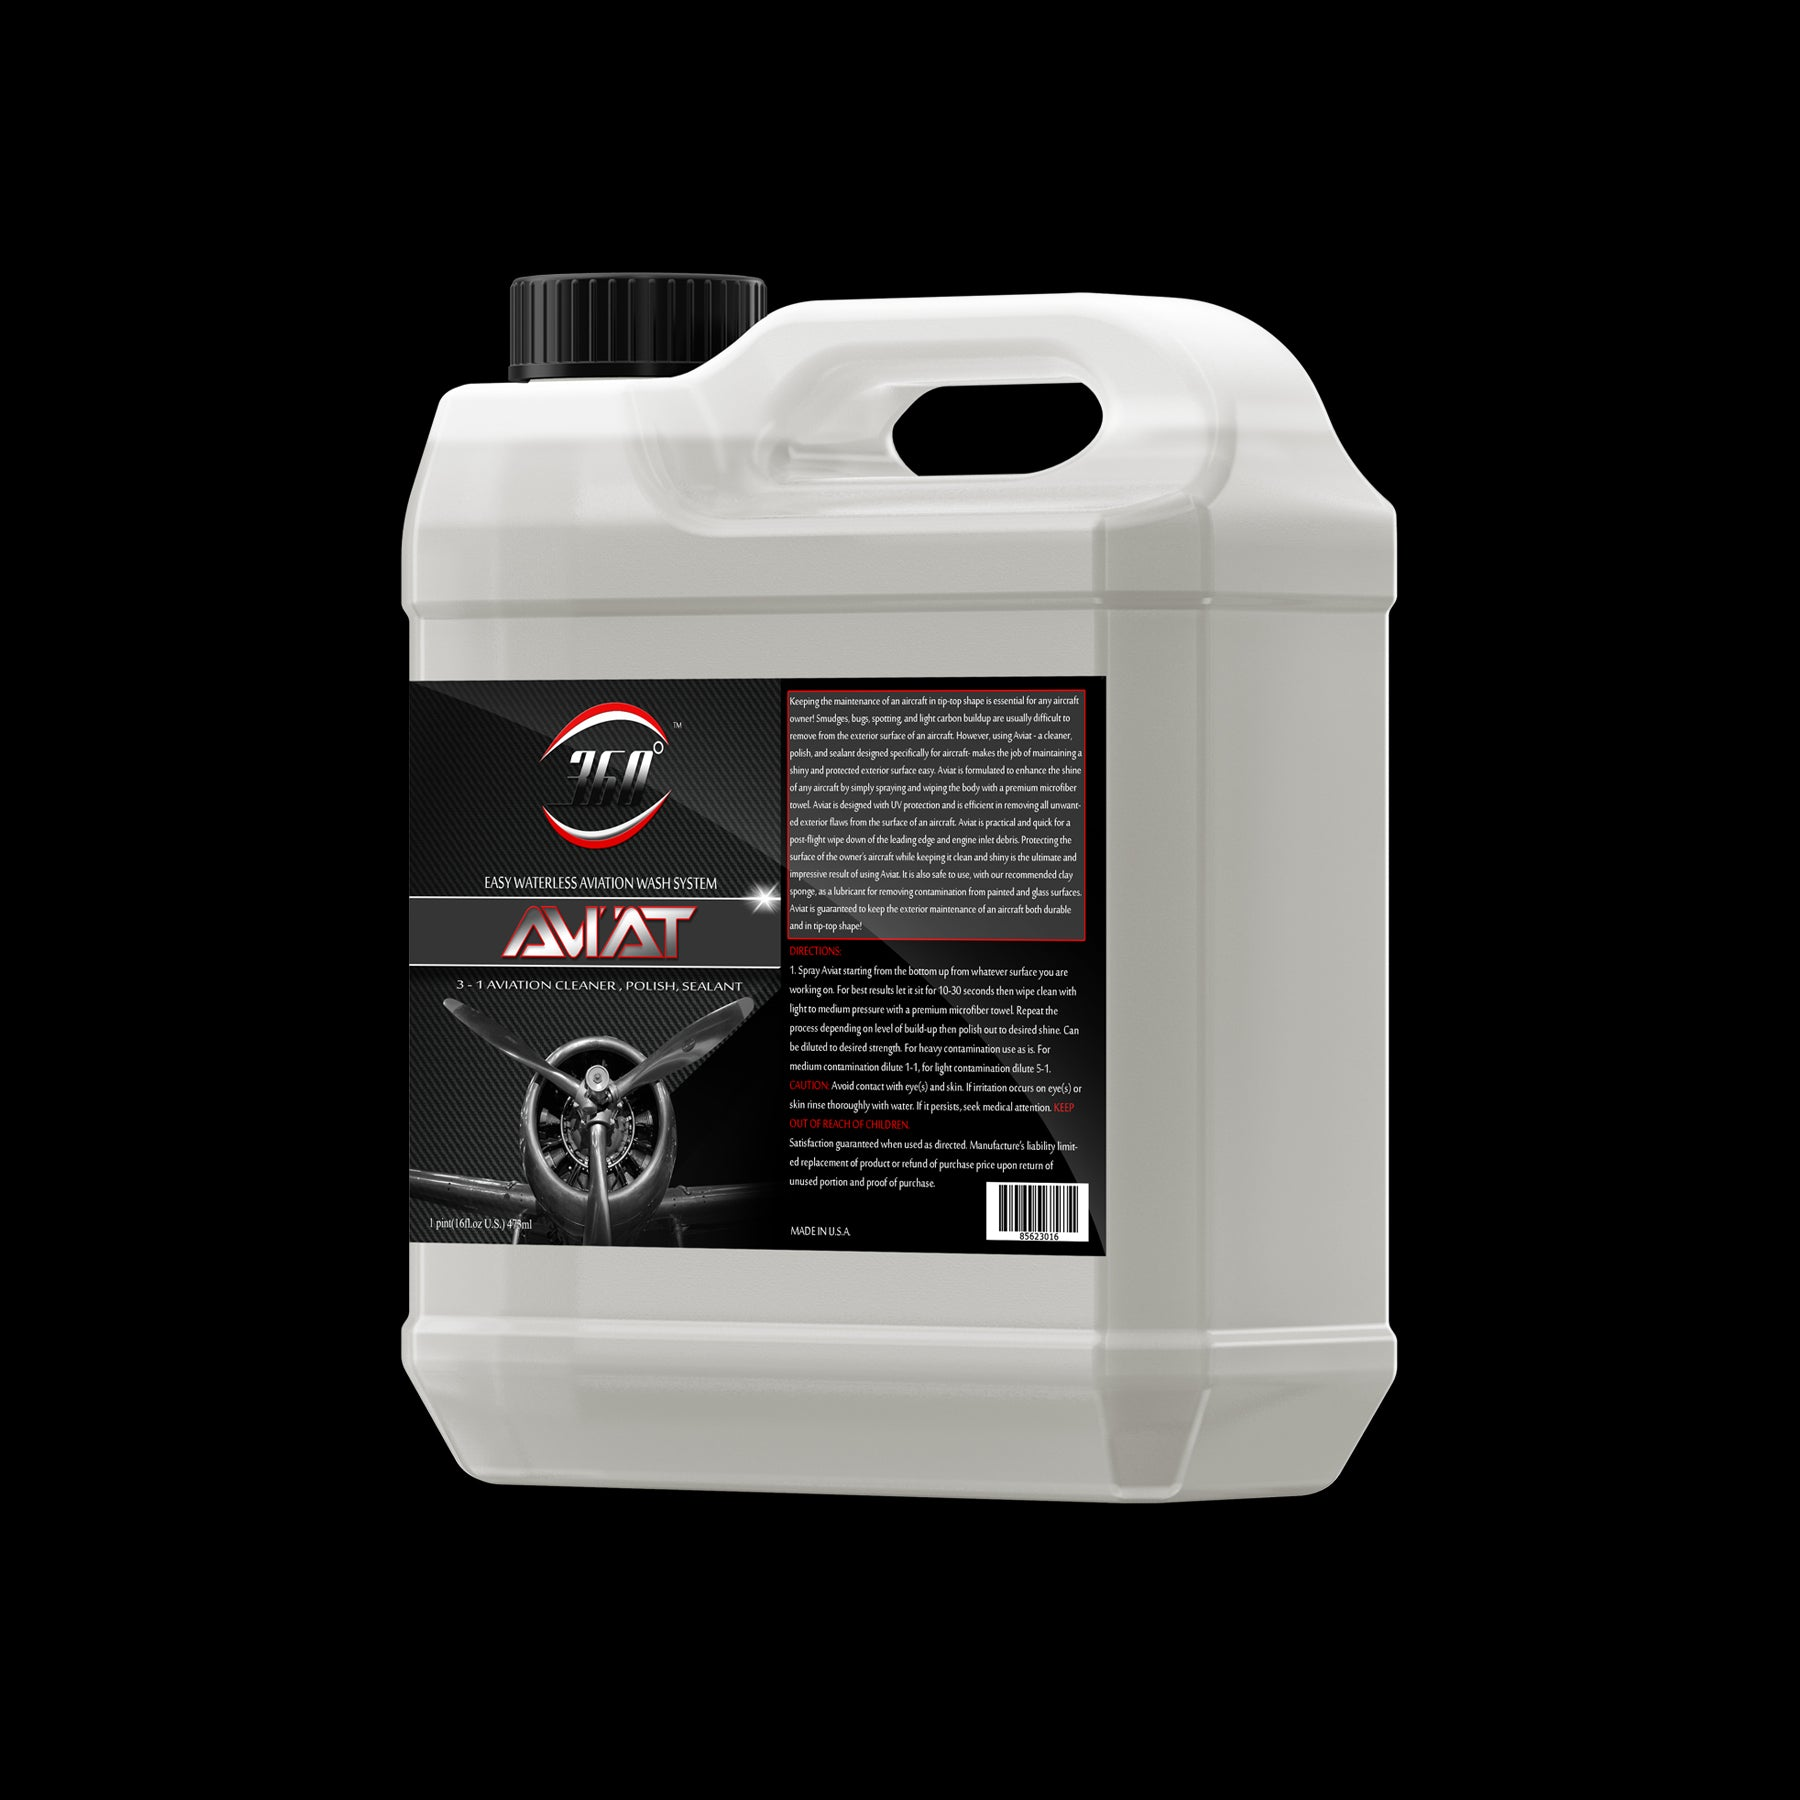 Aviat | EASY WATERLESS AVIATION WASH SYSTEM